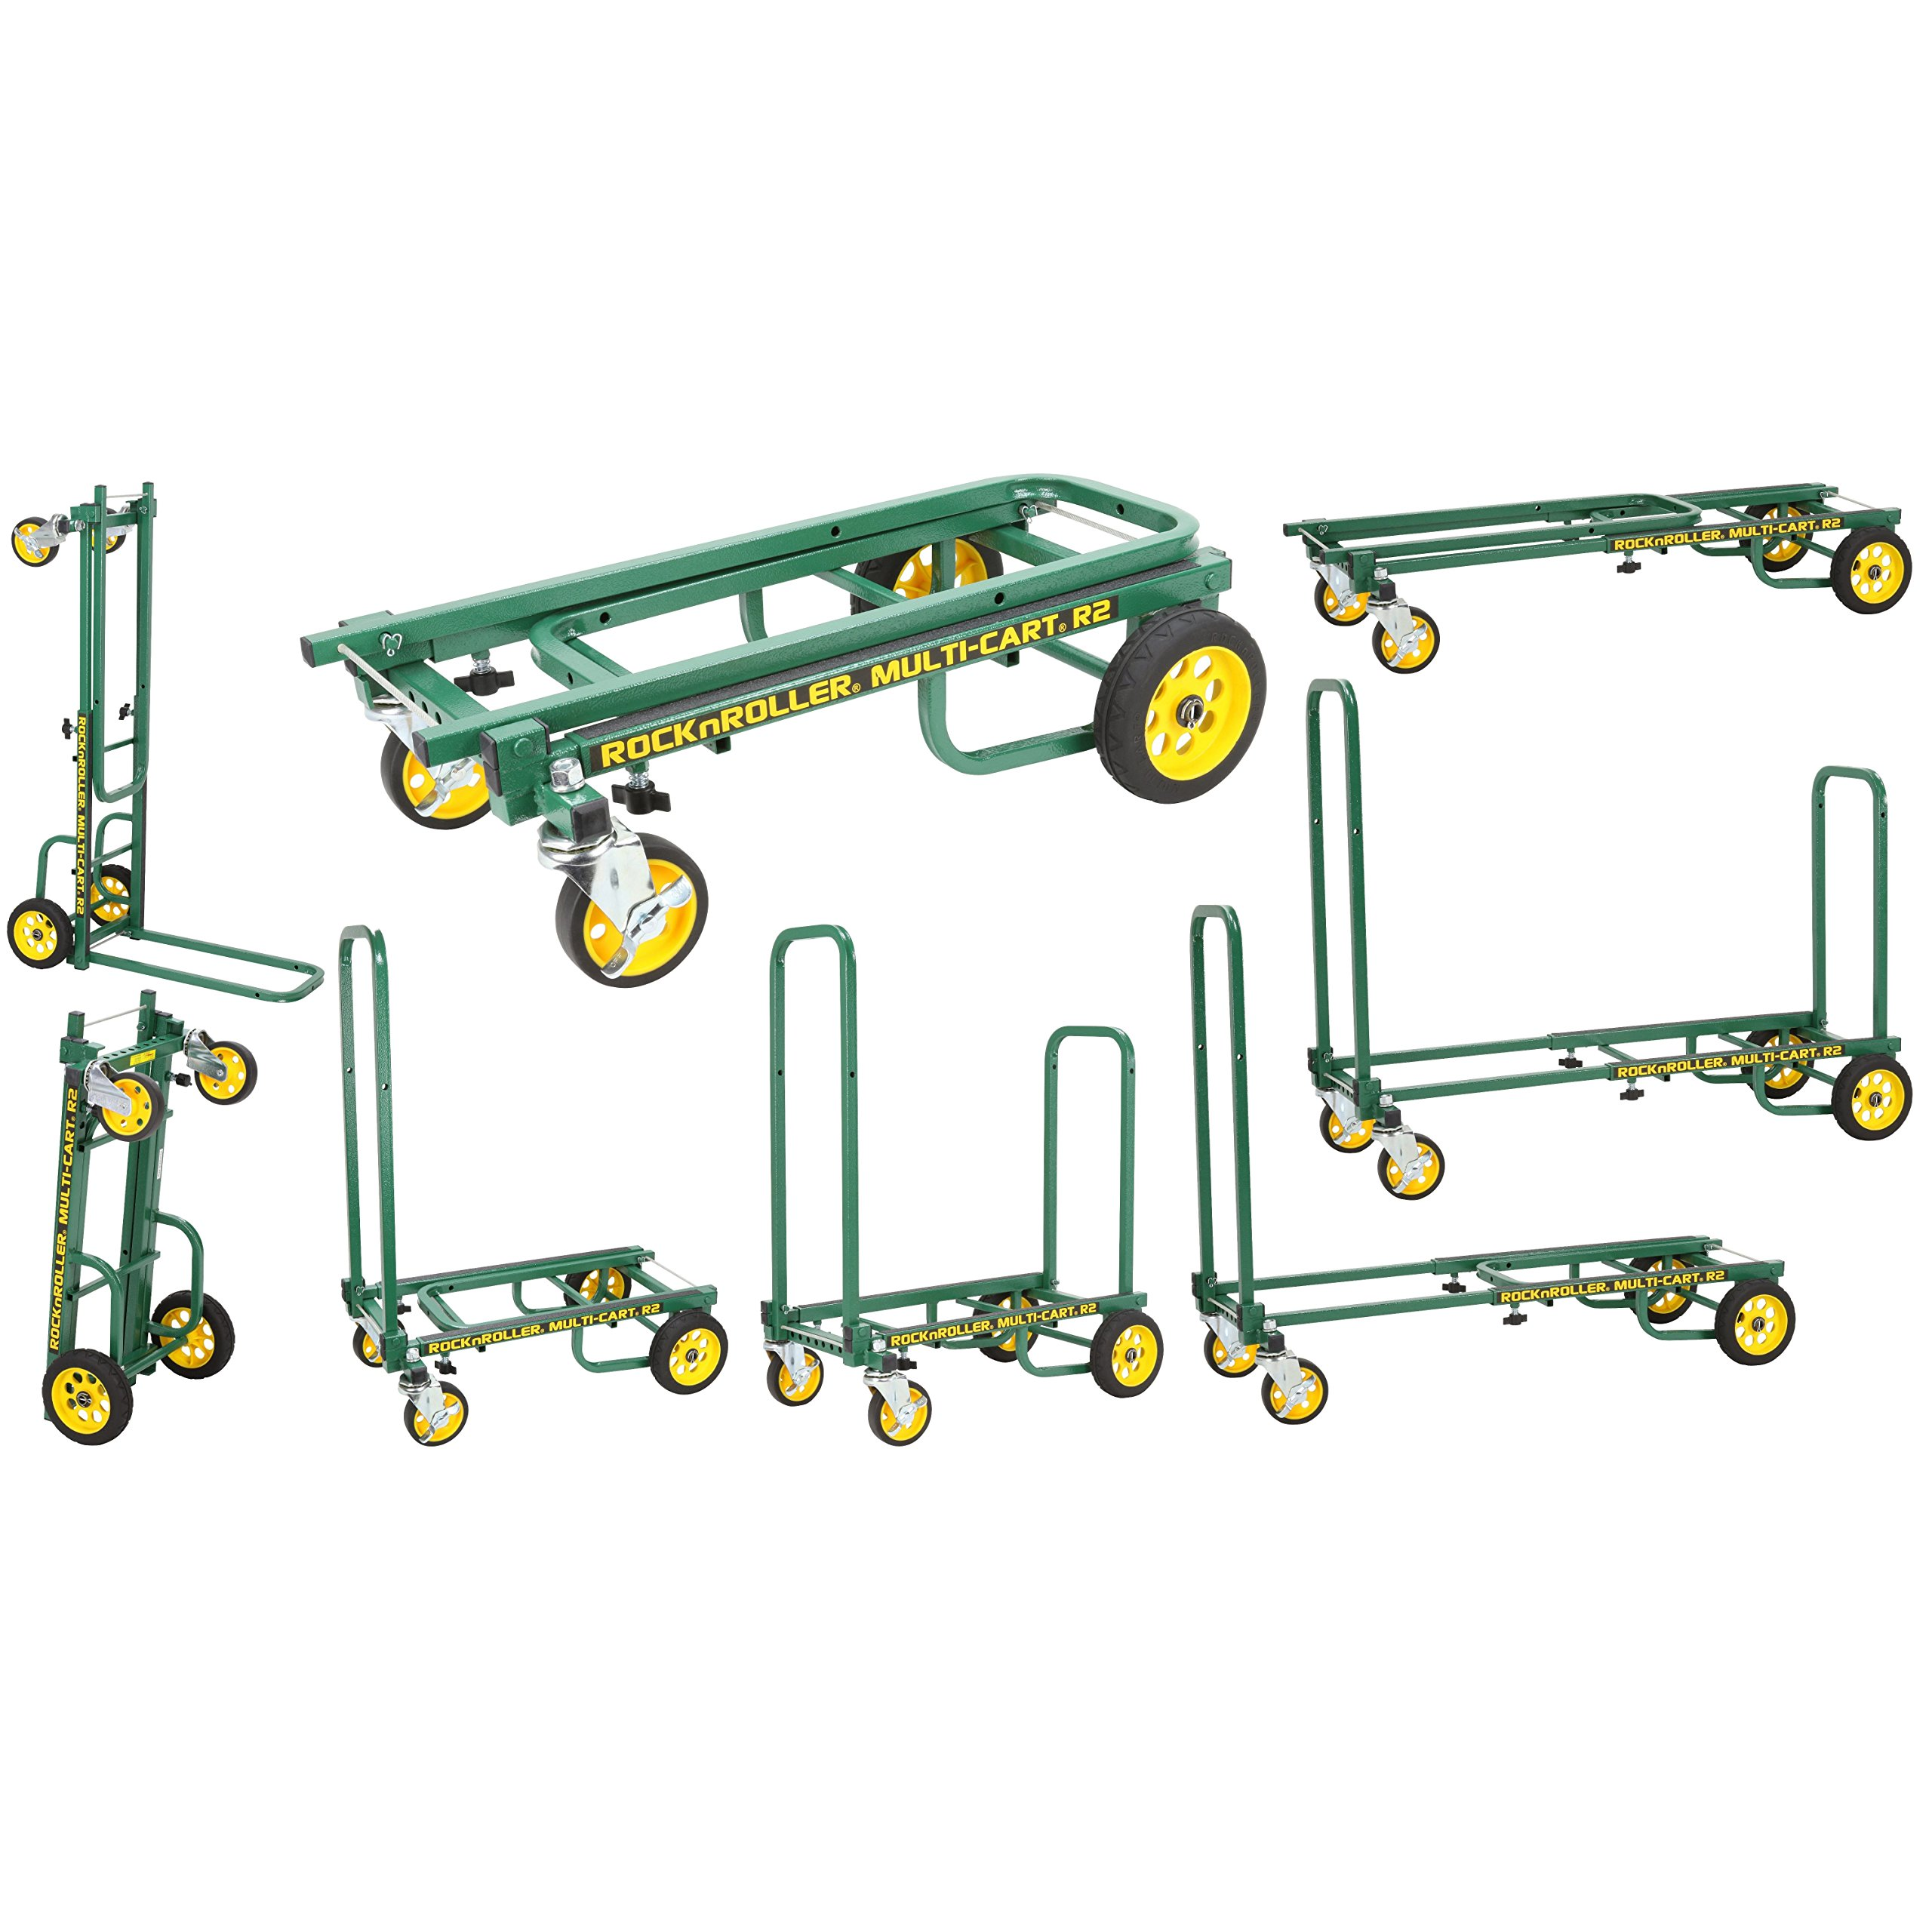 Rock-N-Roller R2RT-GR (Micro) 8-in-1 Folding Multi-Cart/Hand Truck/Dolly/Platform Cart/26'' to 39'' Telescoping Frame/350 lbs. Load Capacity, Green